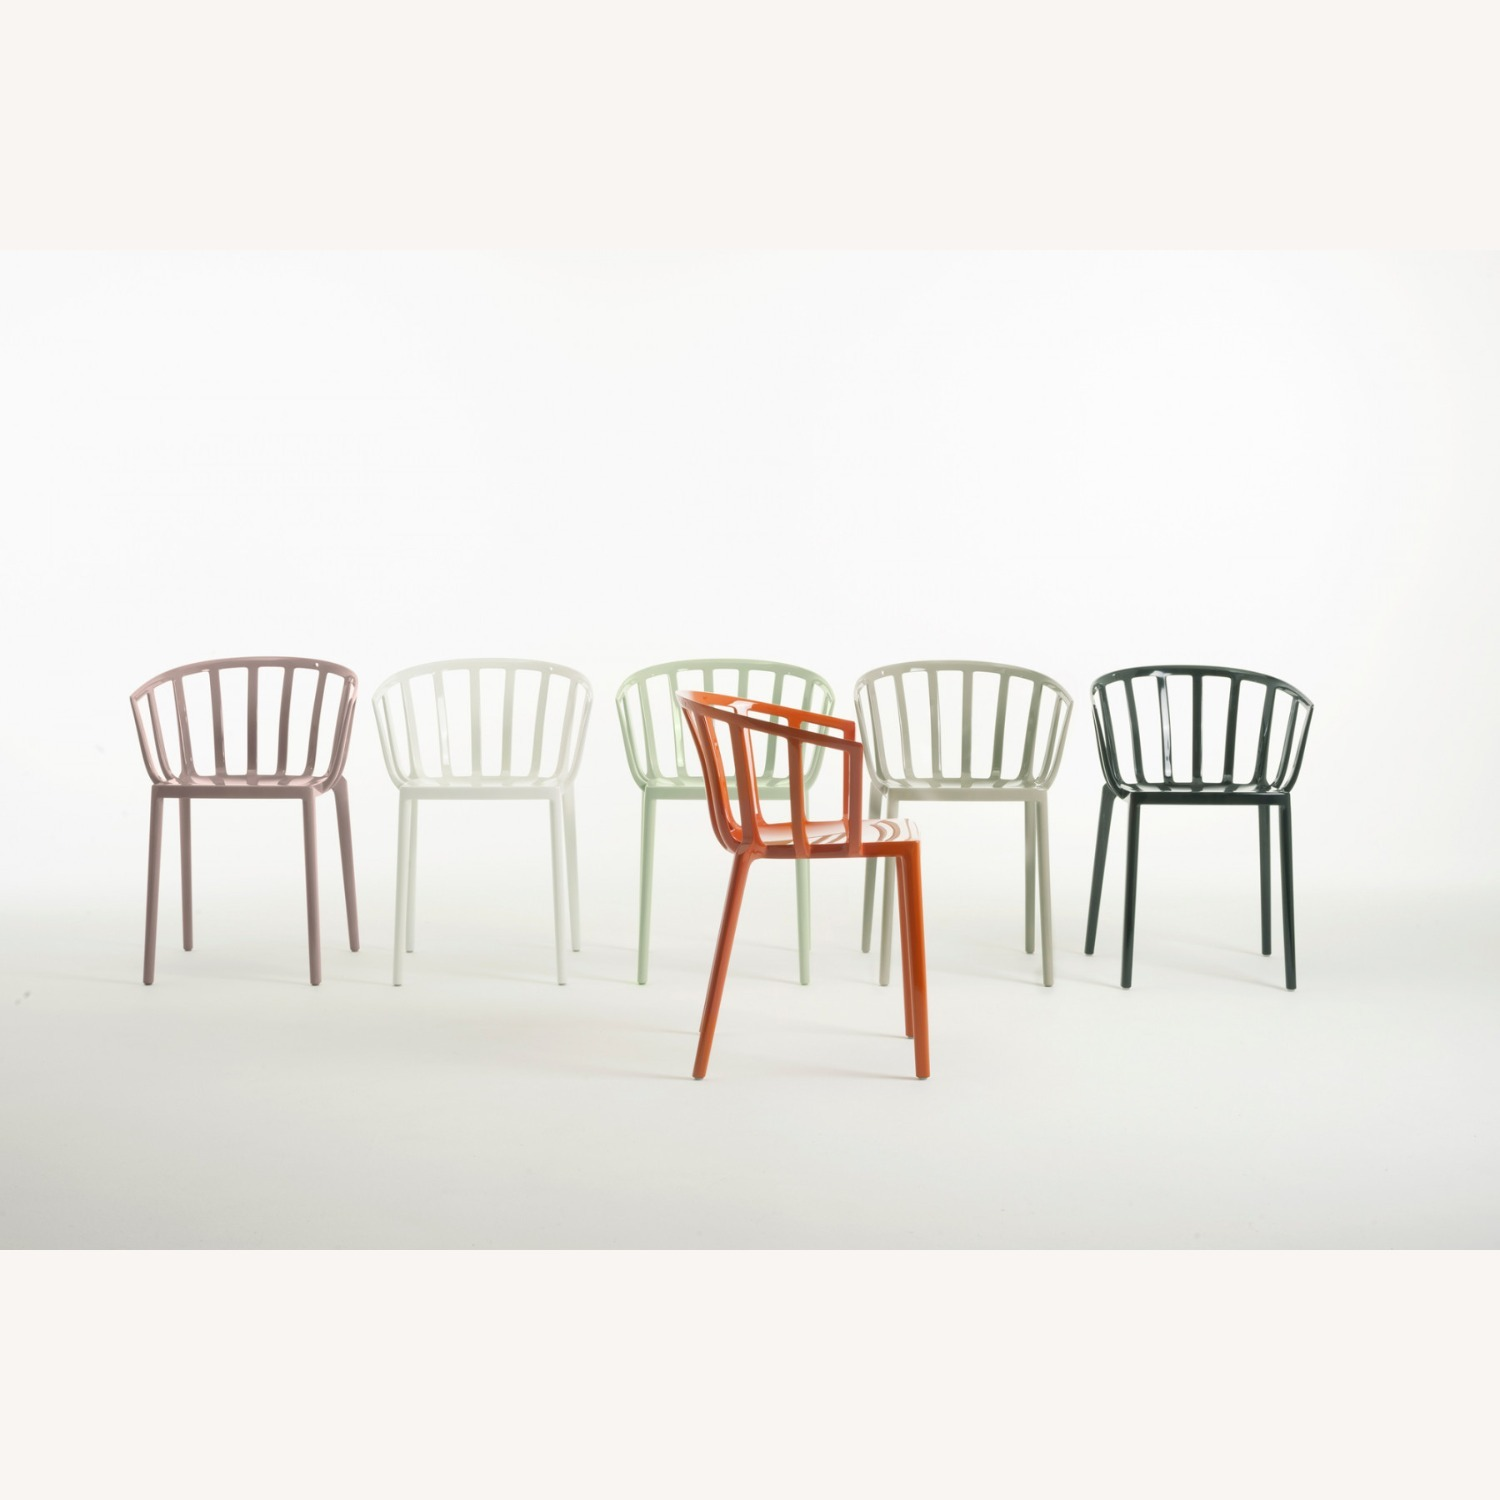 KARTELL Venice Chairs in Dove Gray Set of Two - image-3